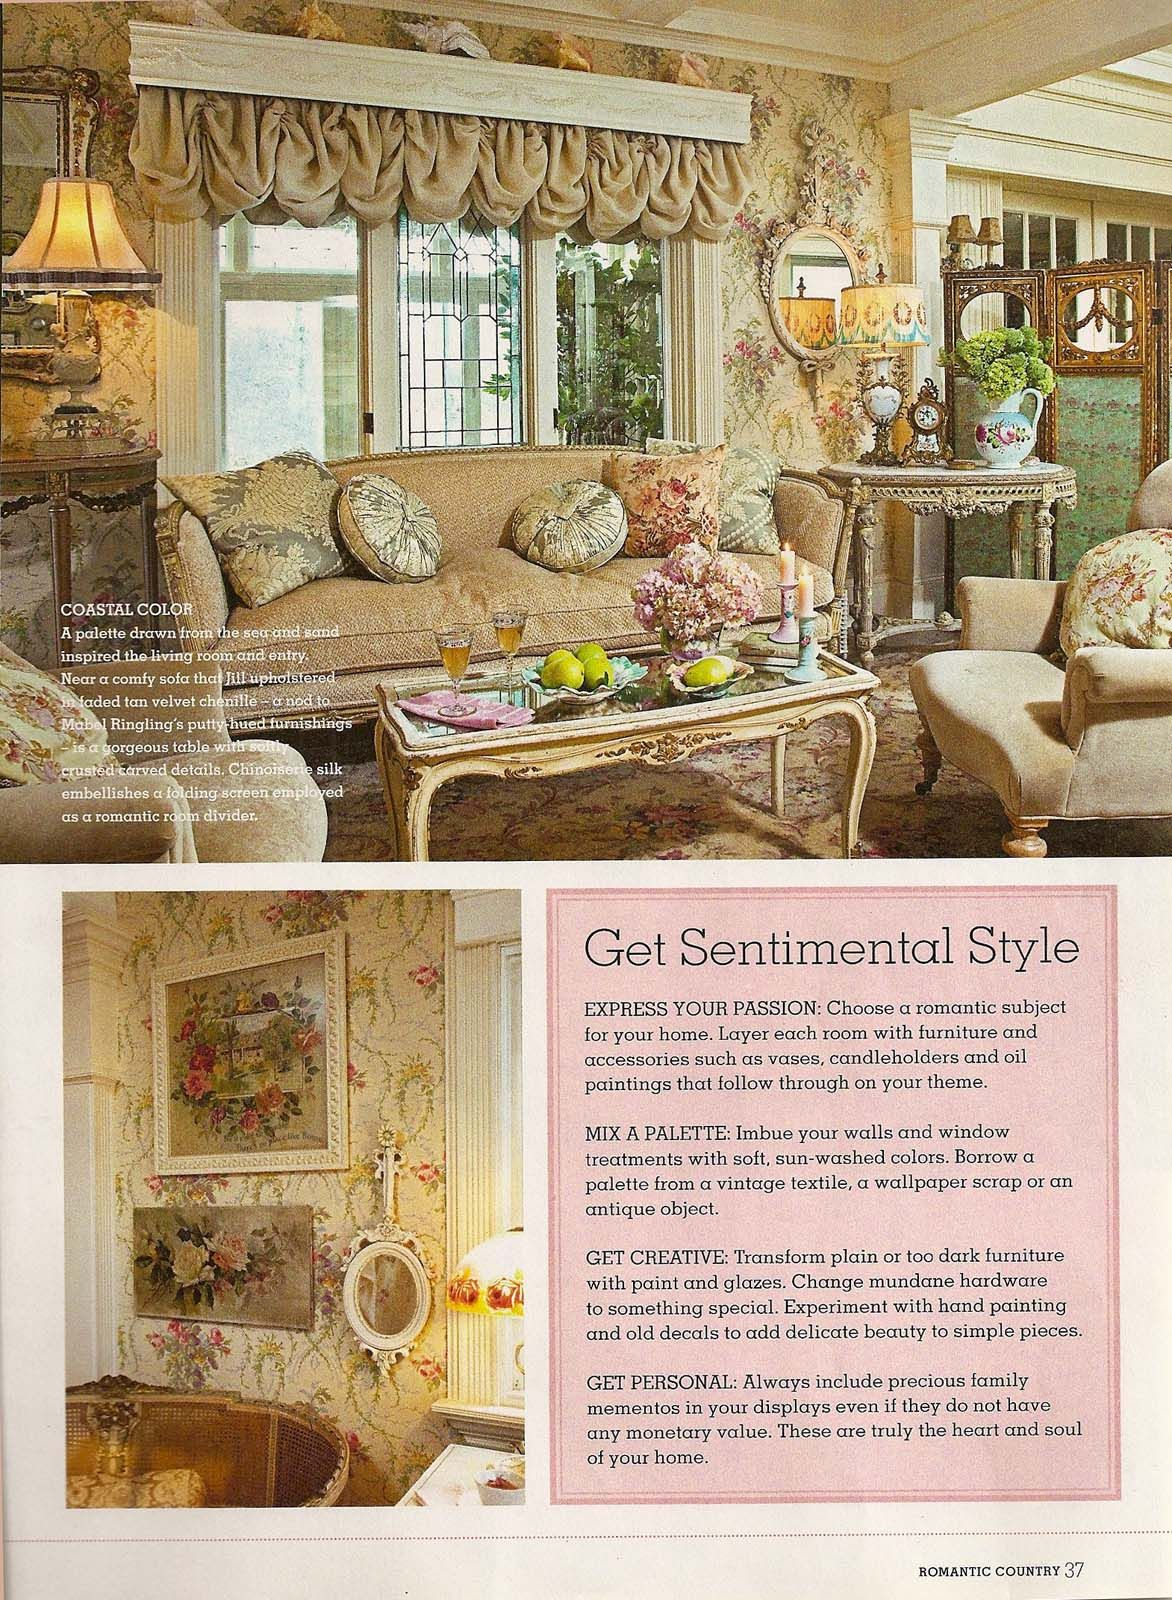 hendrickson furniture. Feature Article Of My Farmhouse In Romantic Country 2012 - Stylist Sunday Hendrickson, Photography By Hendrickson Furniture